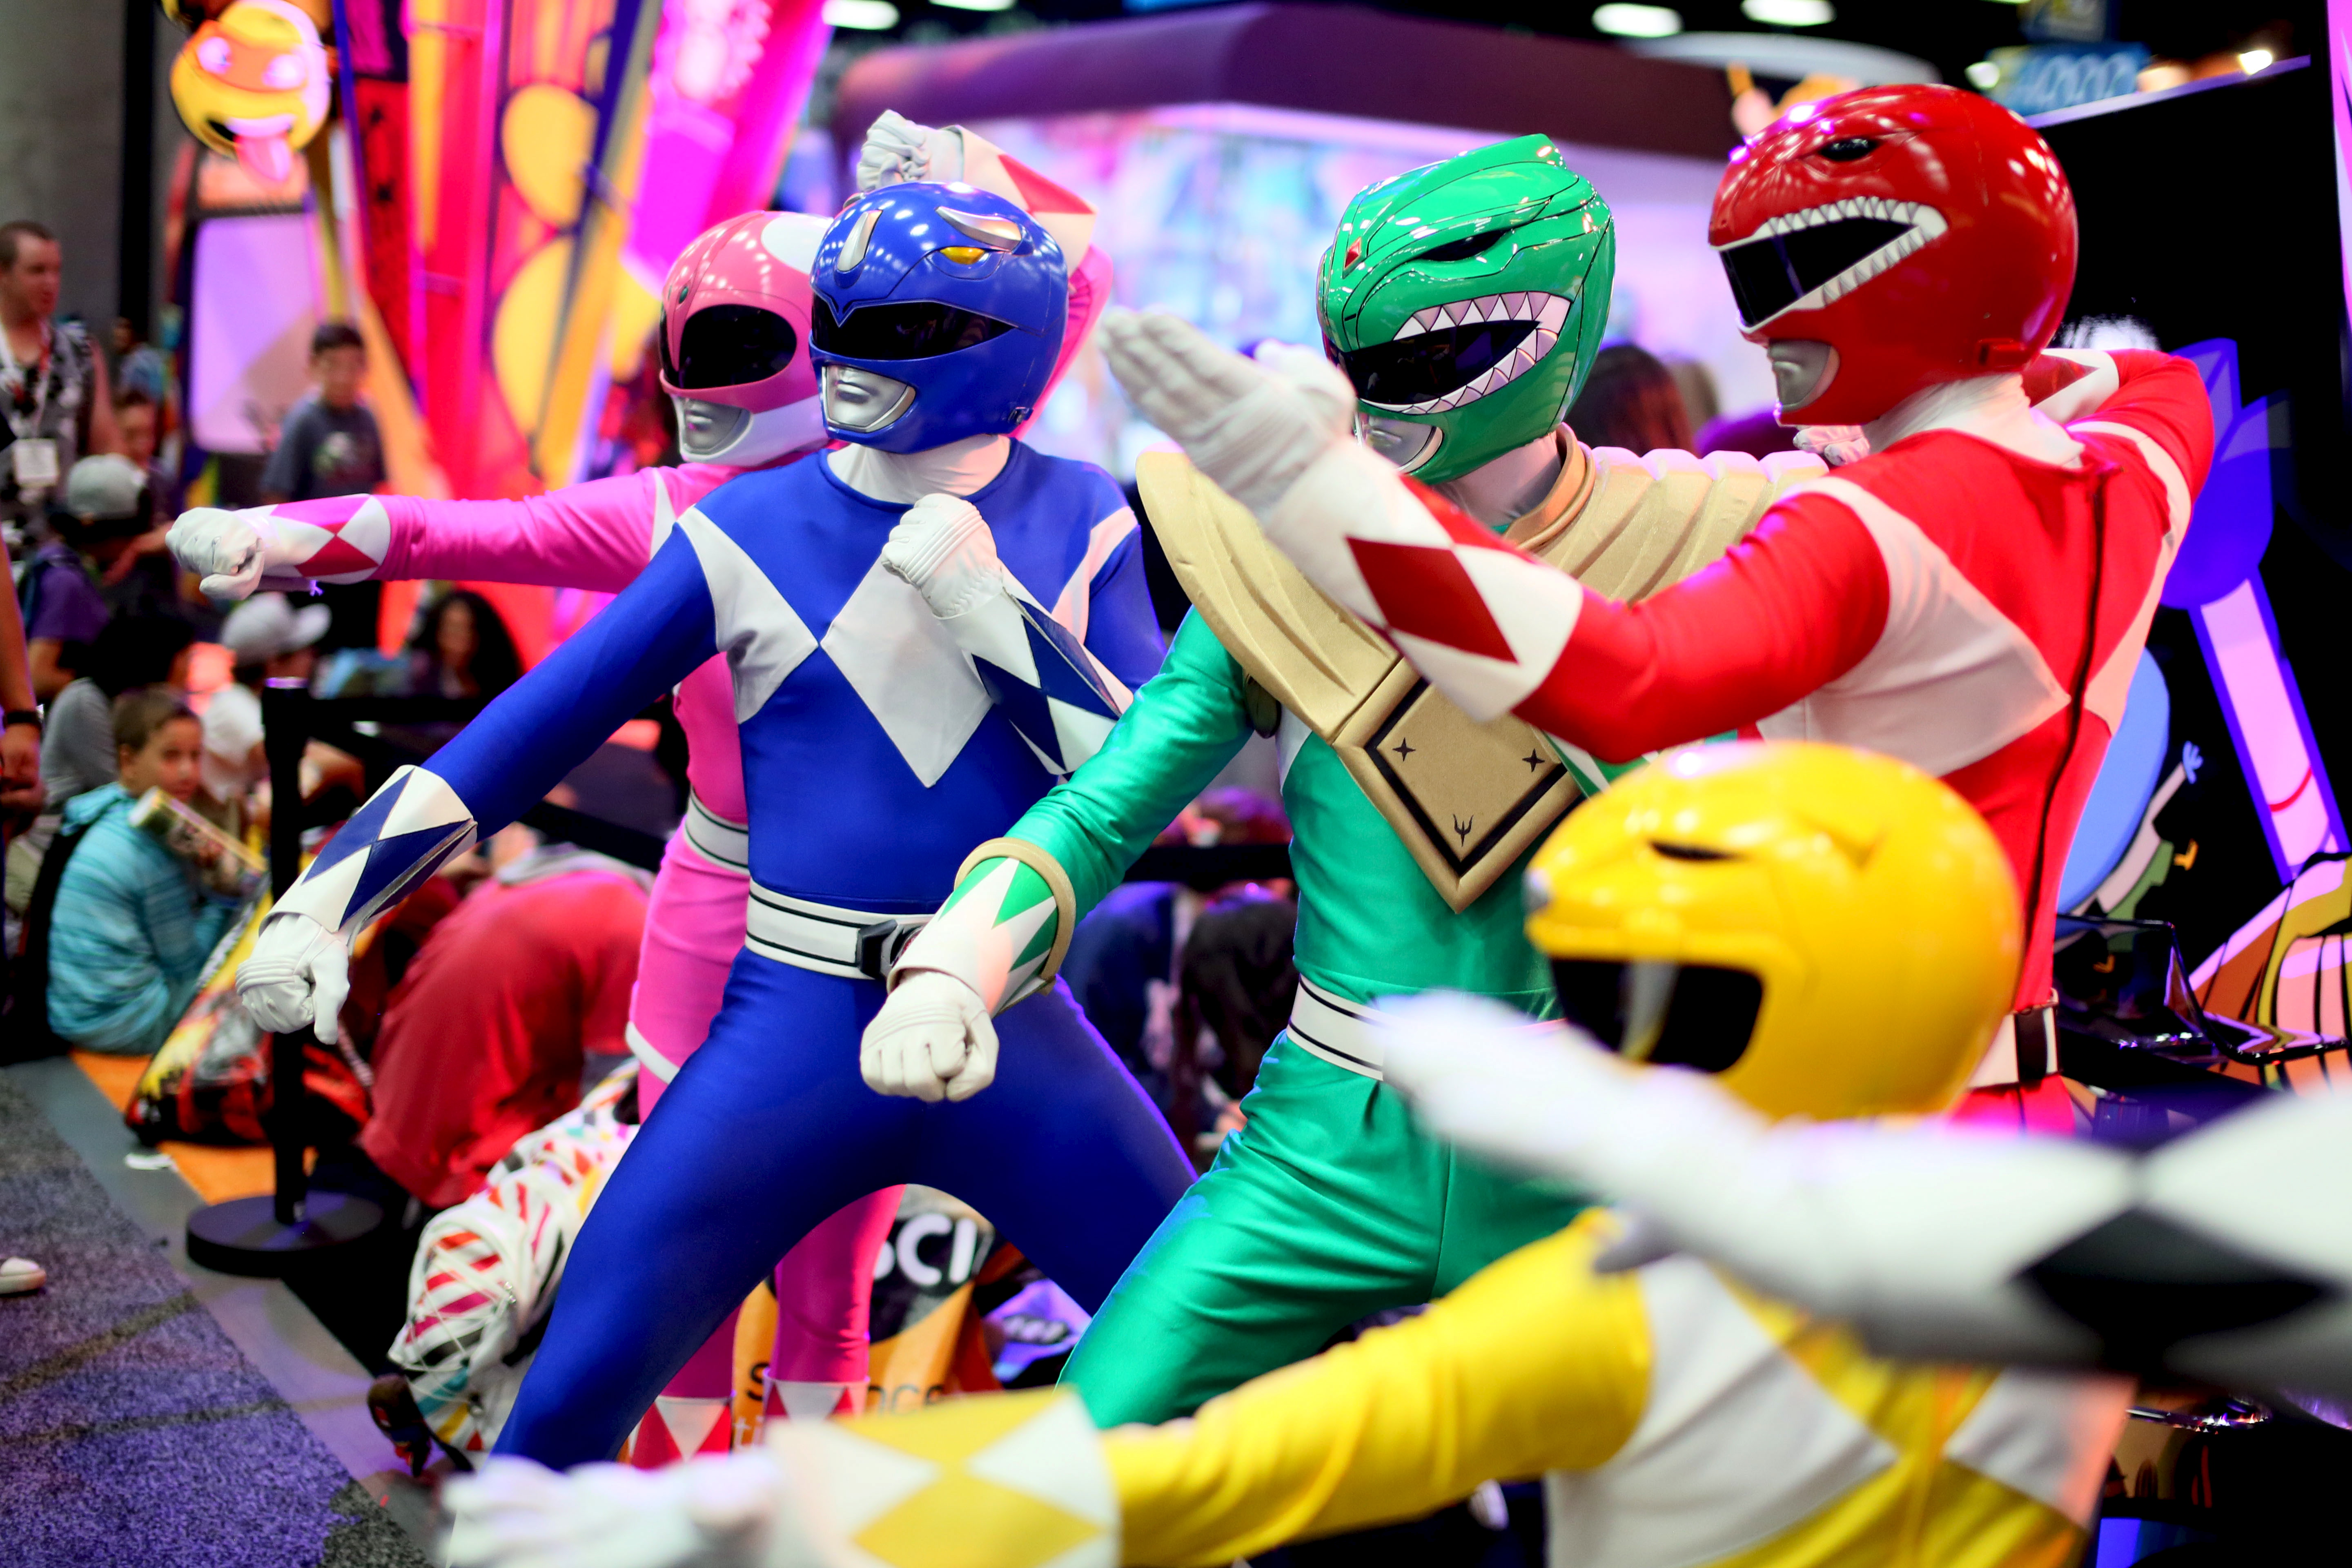 Power Rangers alone won't win toy war for Hasbro